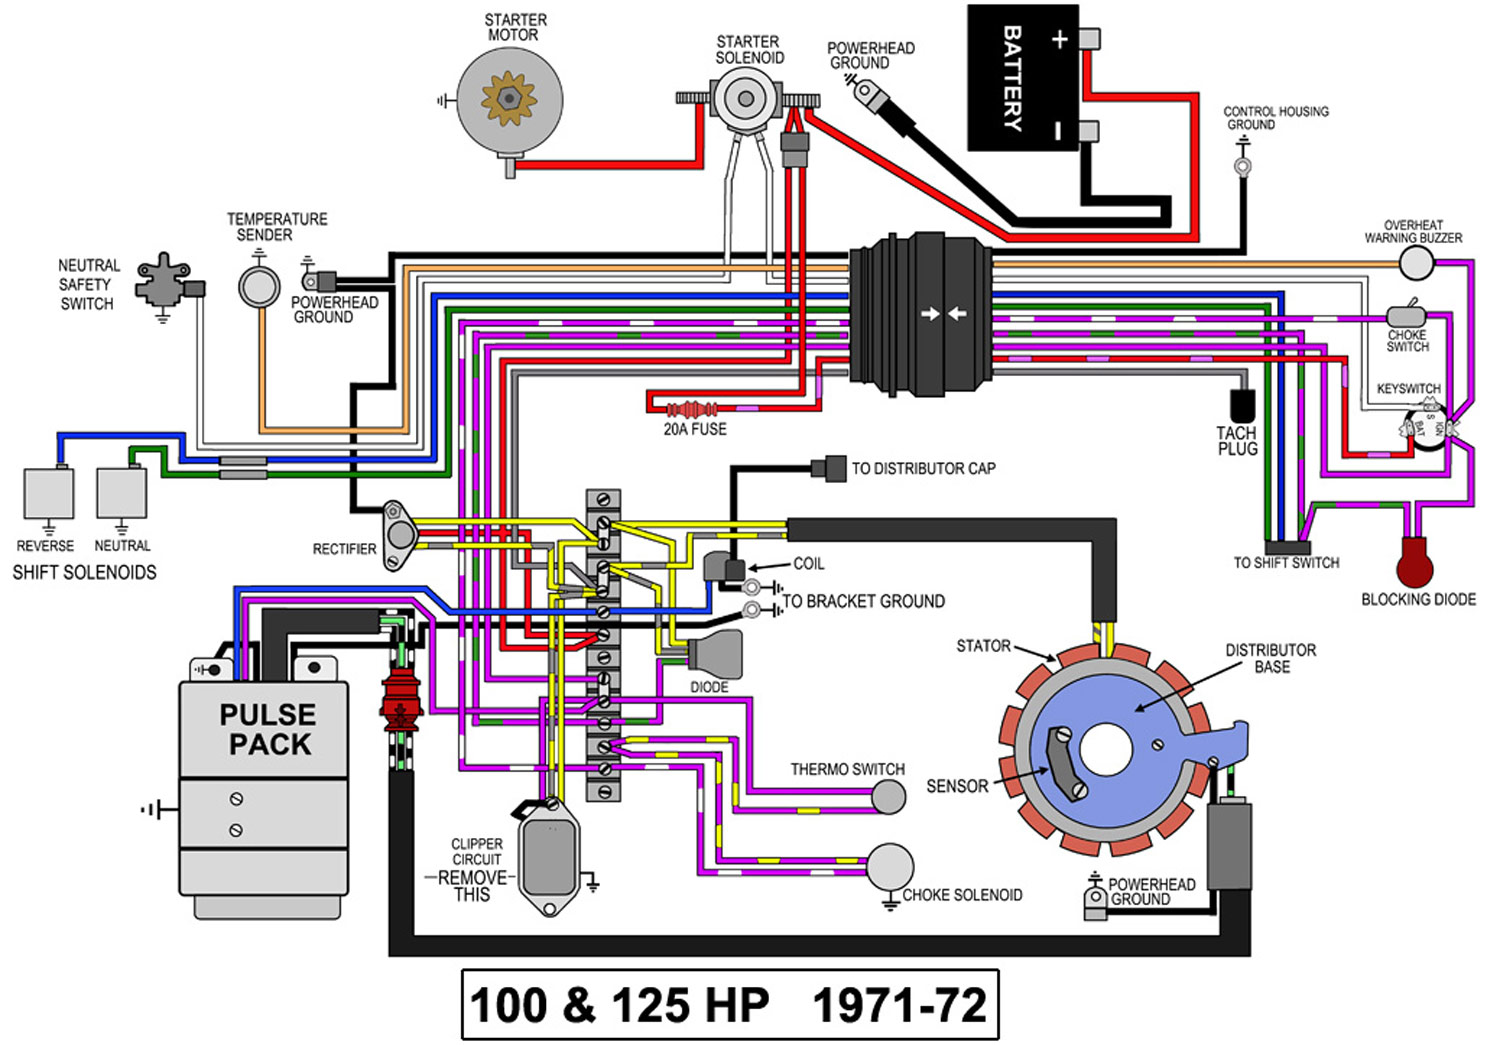 hight resolution of omc 1972 225 wiring harness wiring diagram third level quicksilver key switch wiring diagram omc 1972